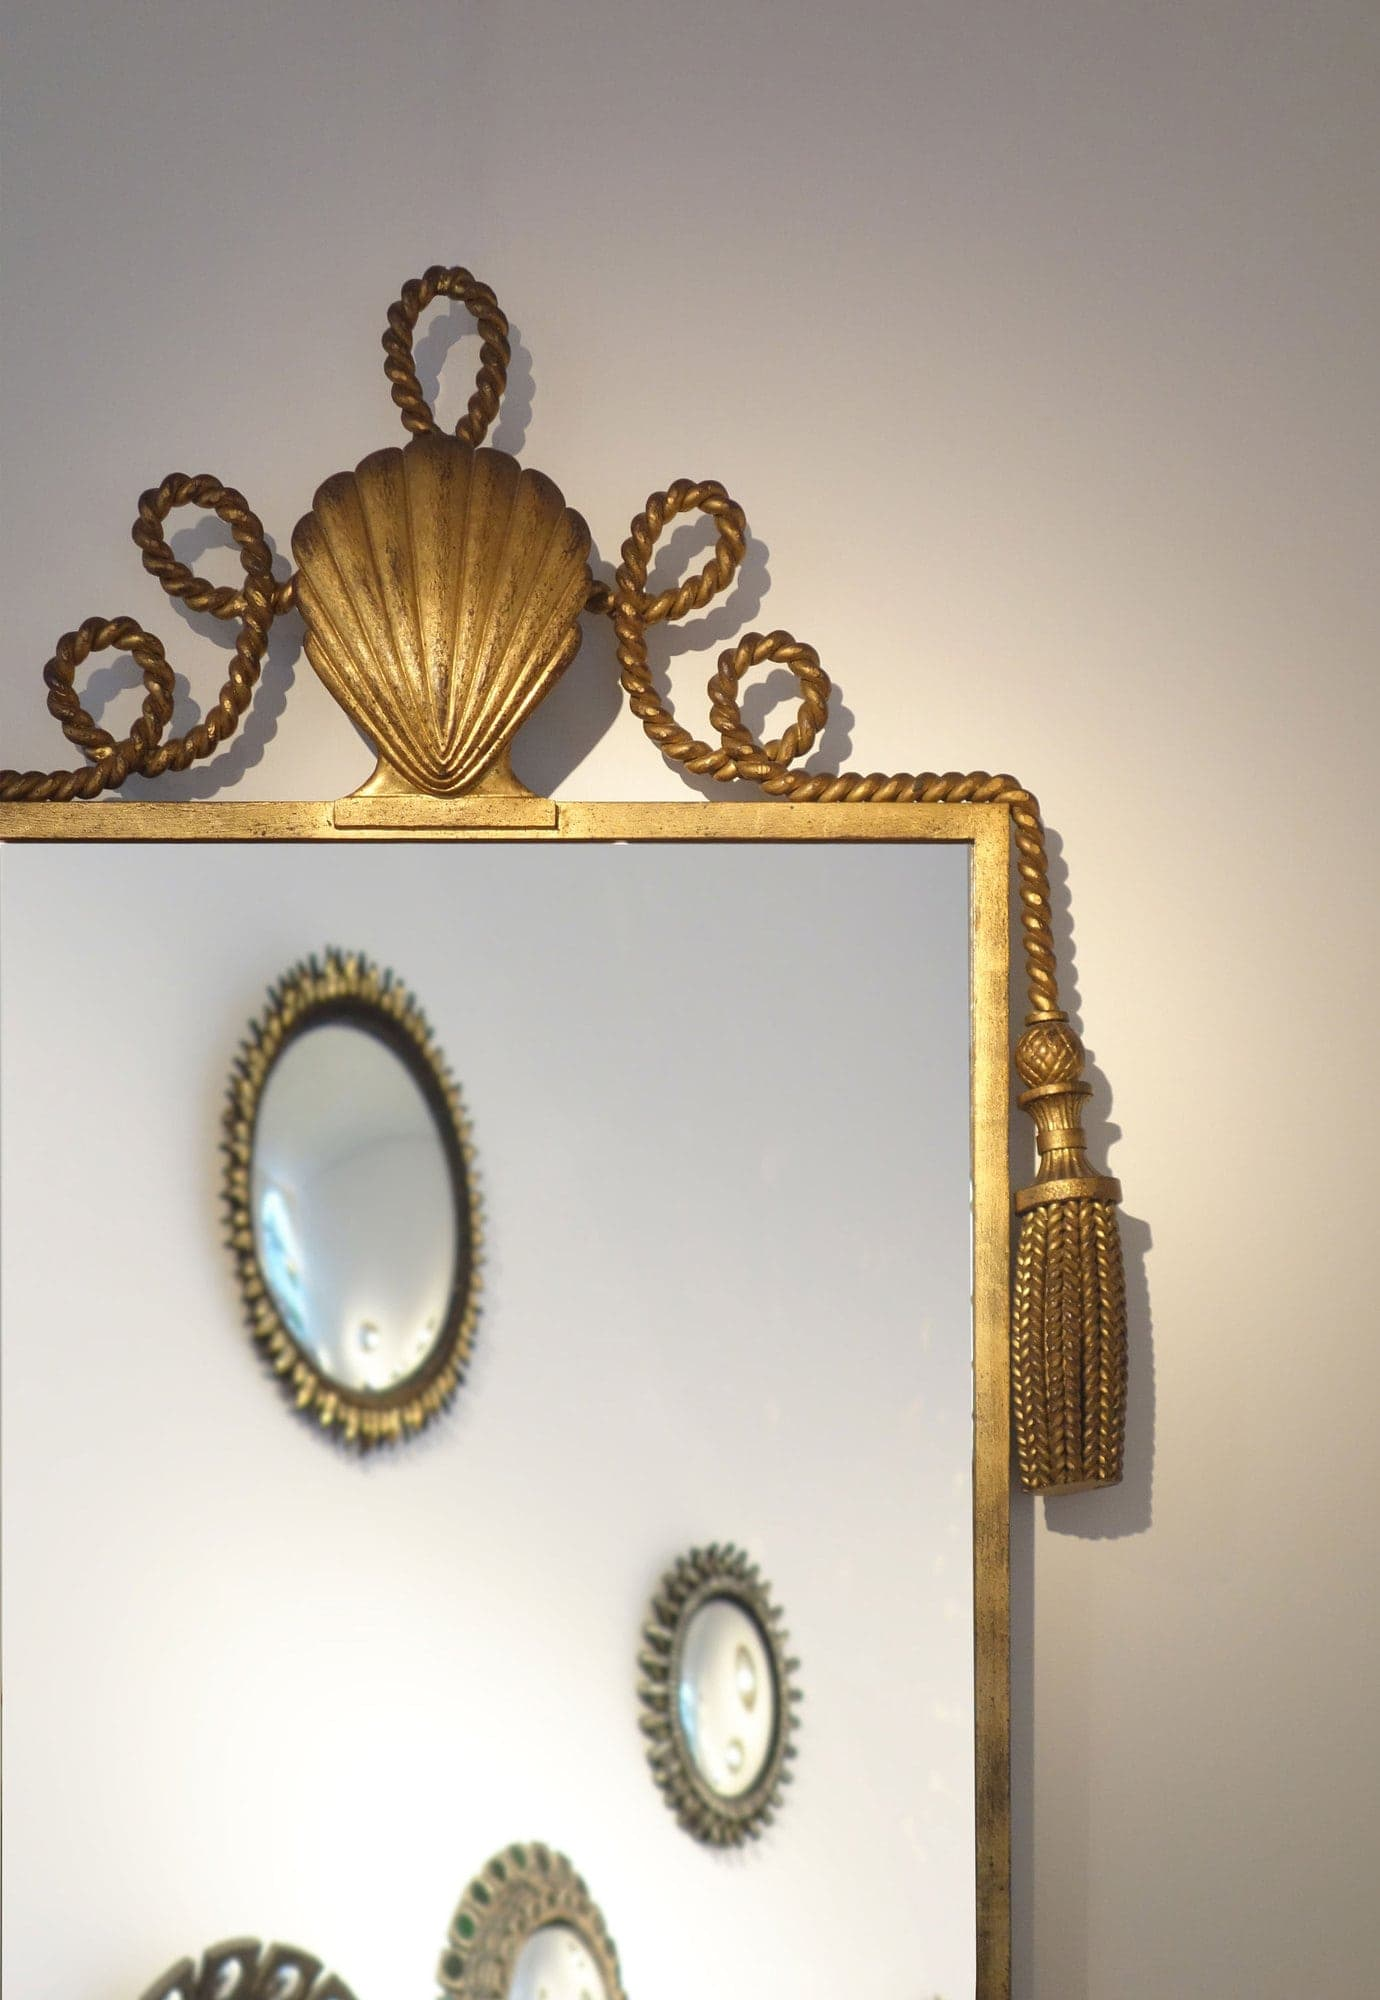 Gilbert Poillerat, Important and rare mirror (sold), vue 02